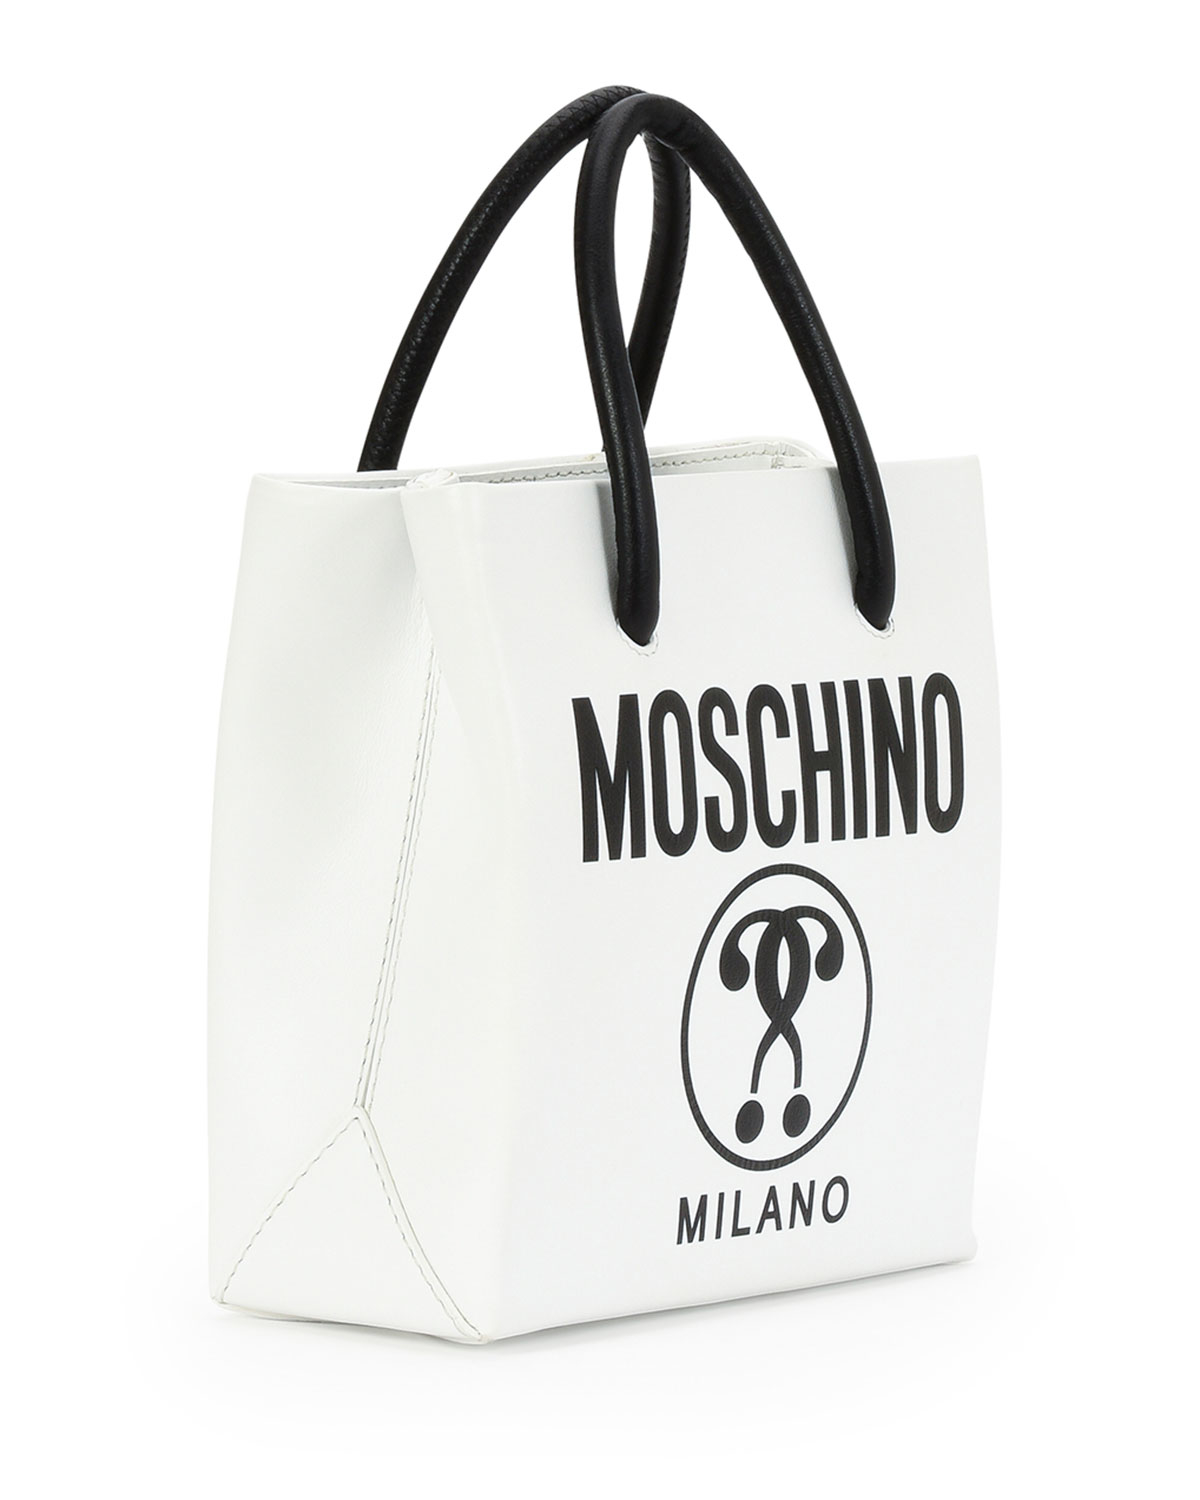 Lyst Moschino Small Logo Print Shopping Tote Bag In Black